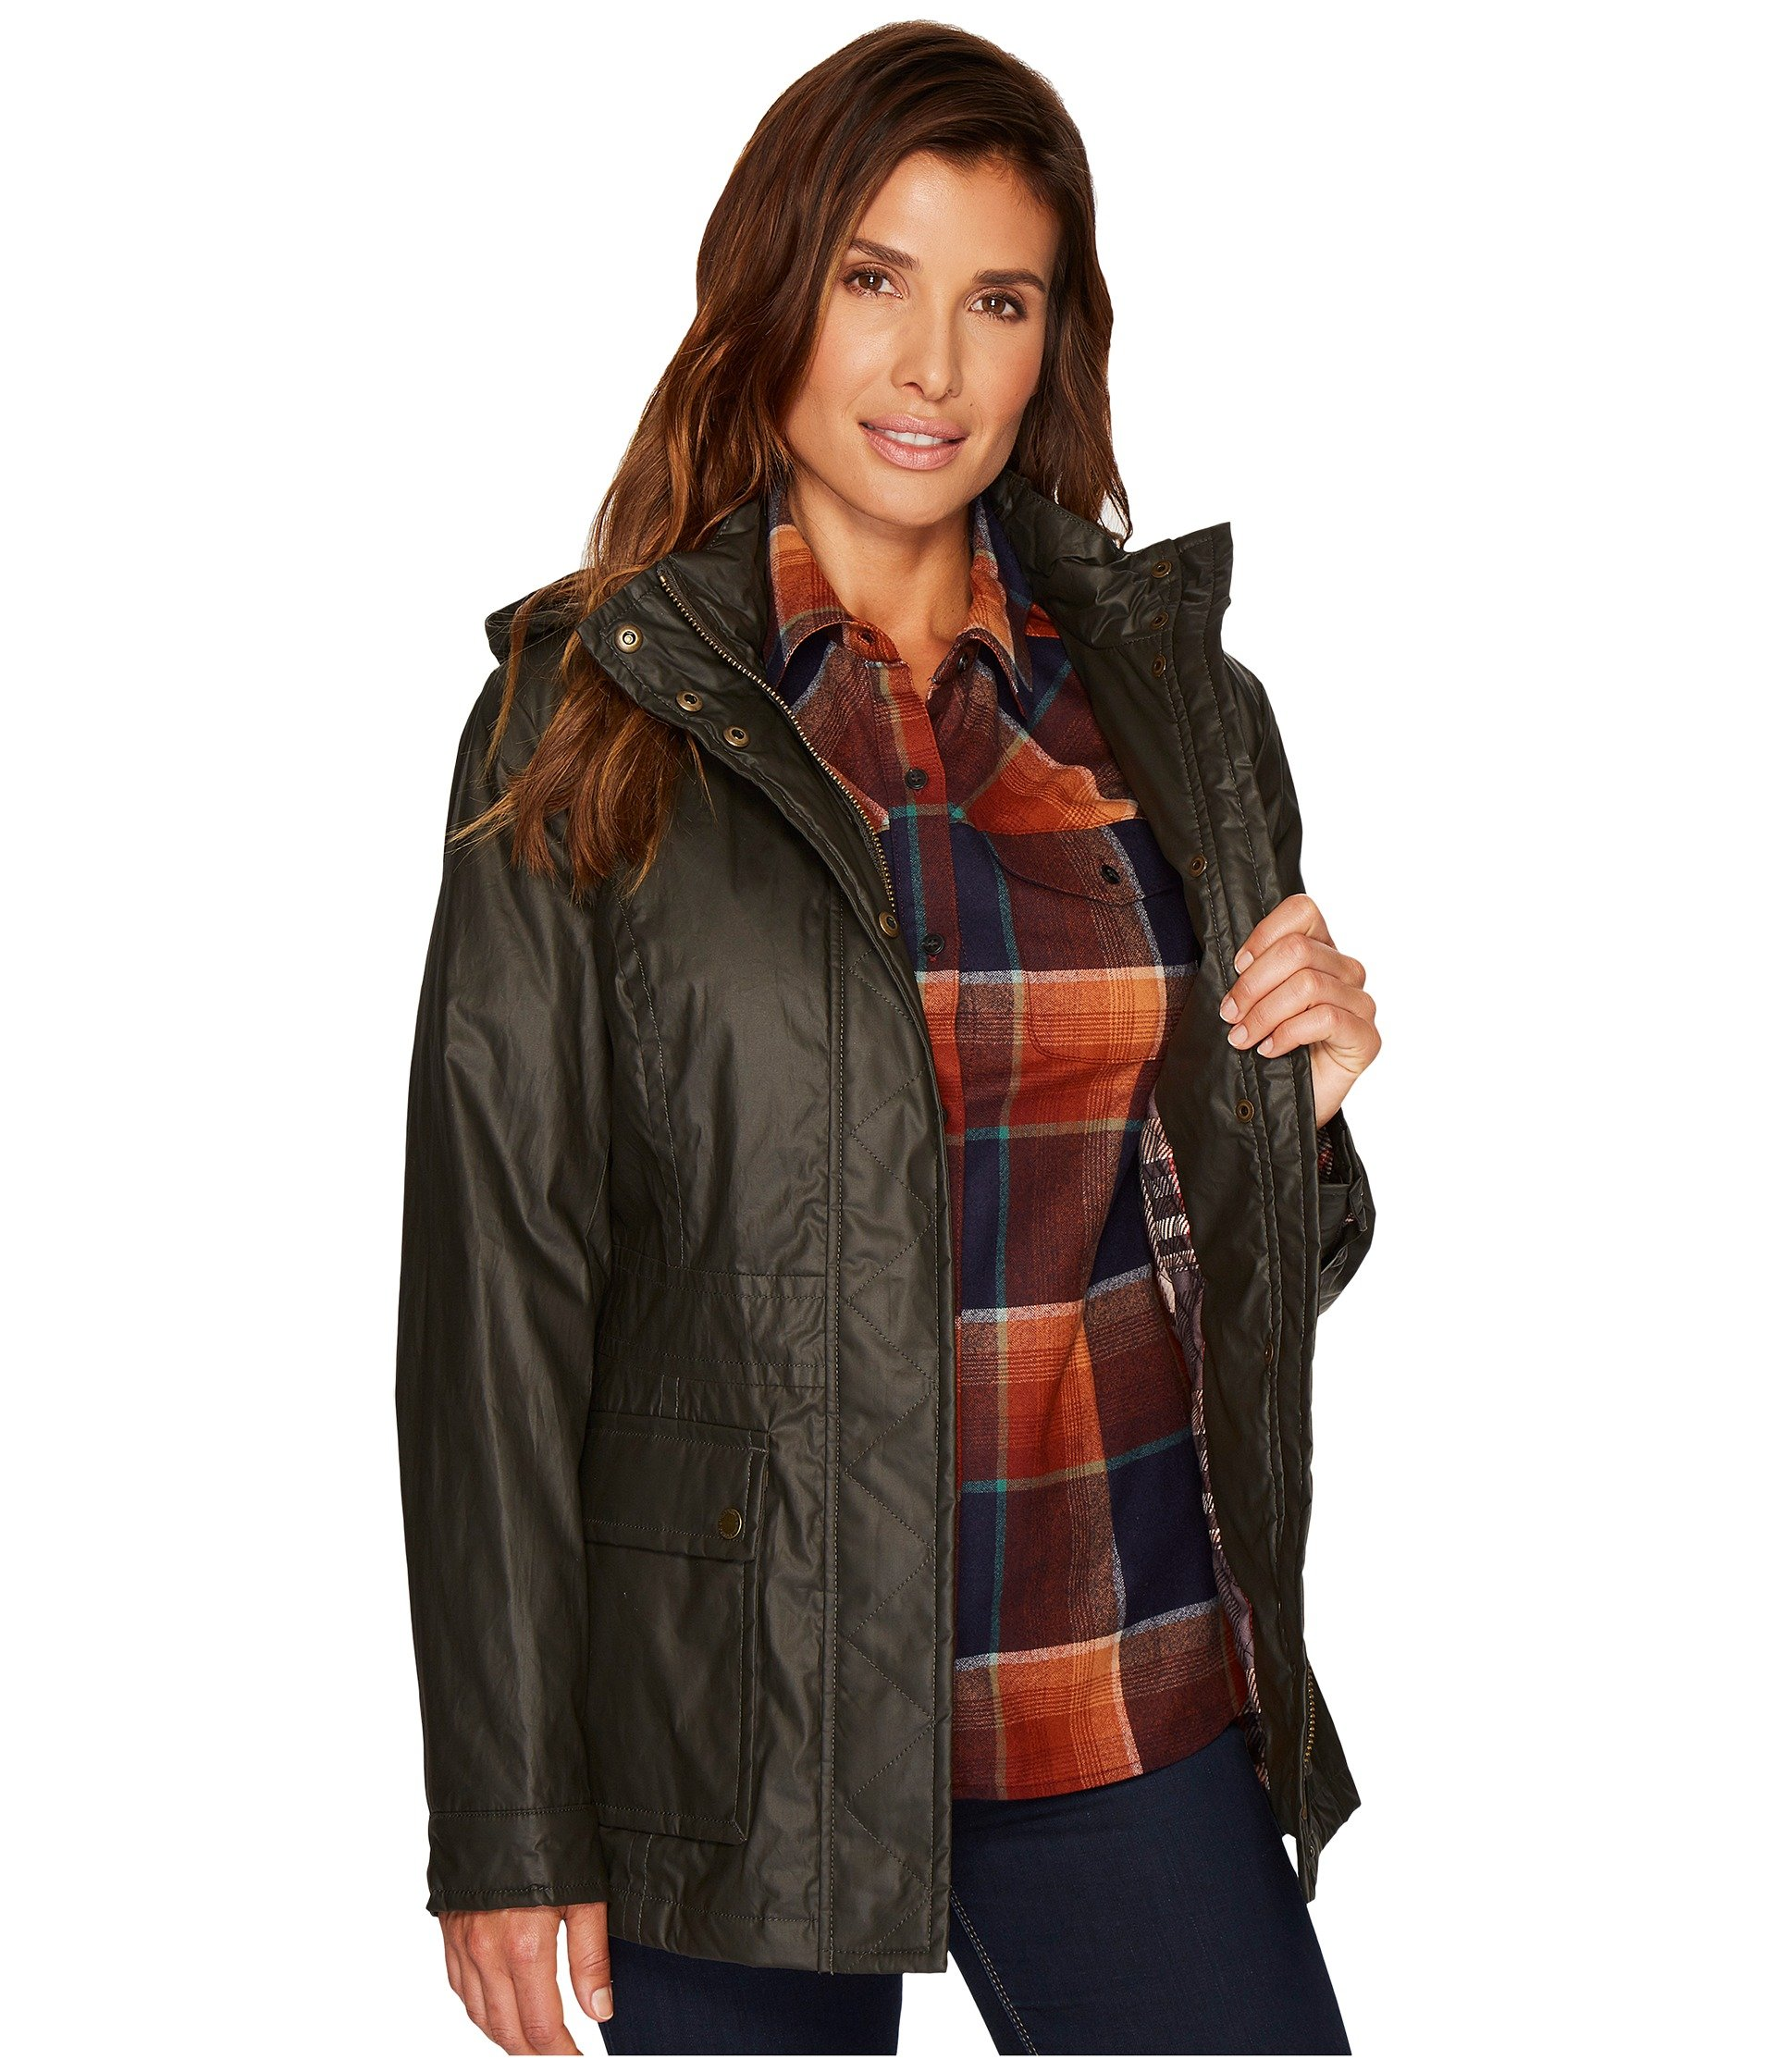 Pendleton Women's Waxed Cotton Hooded Zip Front Jacket, Olive, M by Pendleton (Image #8)